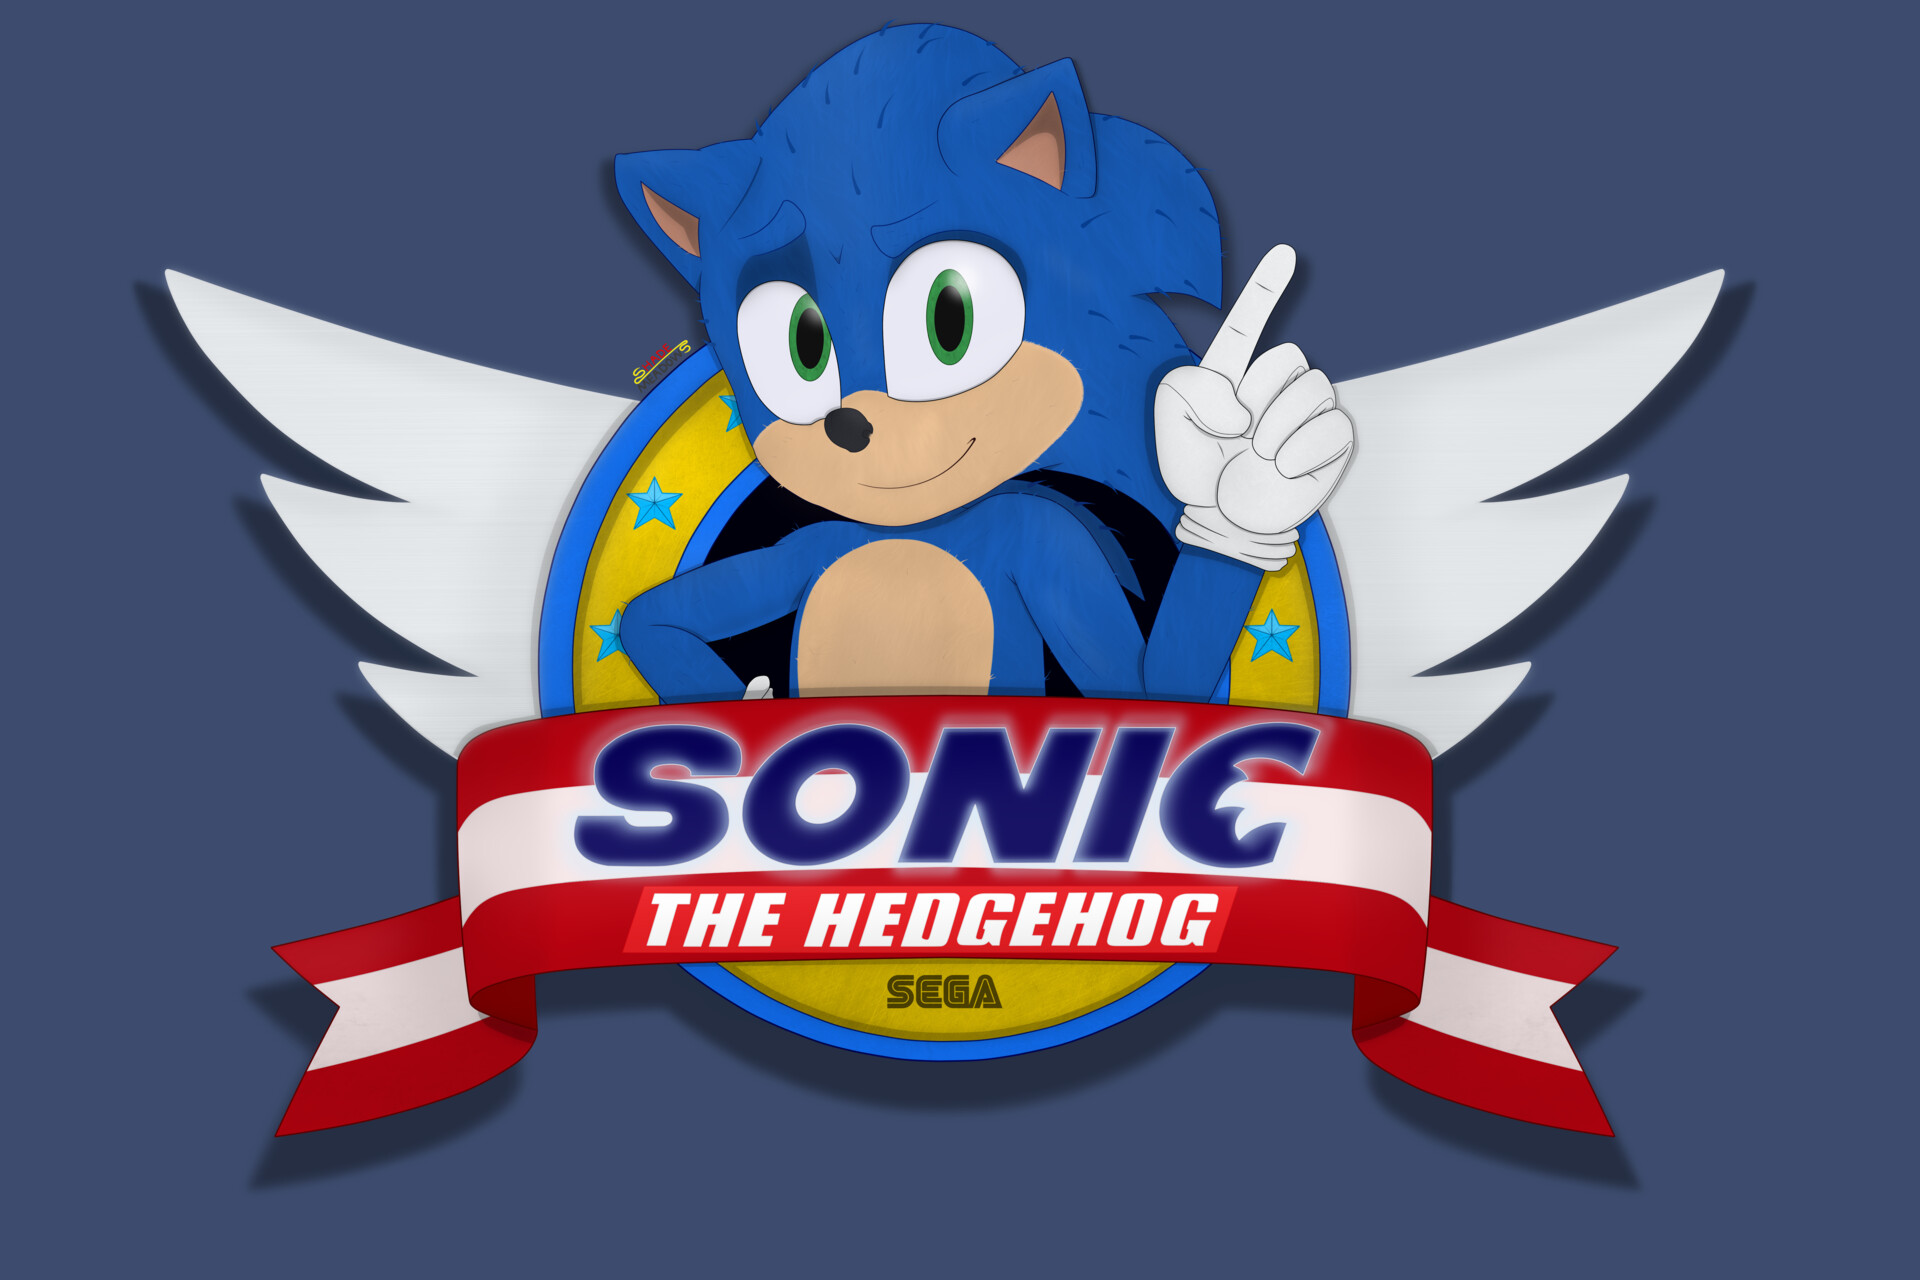 sonic the hedgehog 2 movie logo